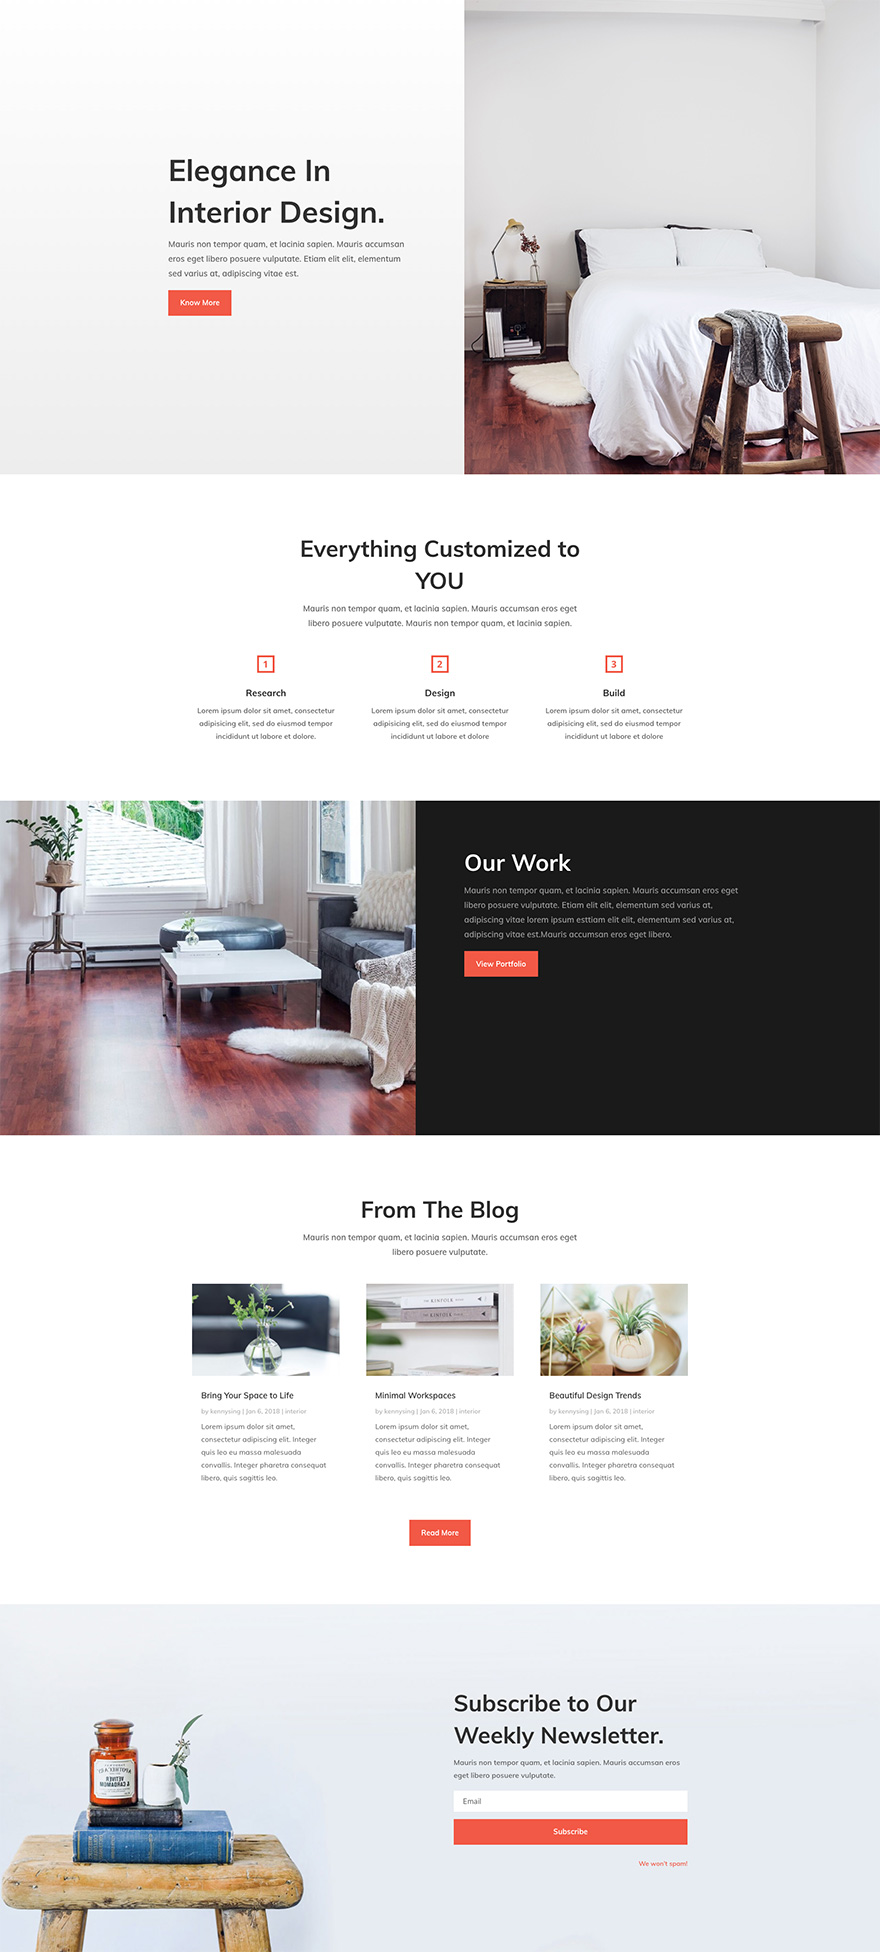 With The Interior Designer You Can Be Customize And Expand Your Website As  Needed With Your Brand Colors And Fonts And Images.